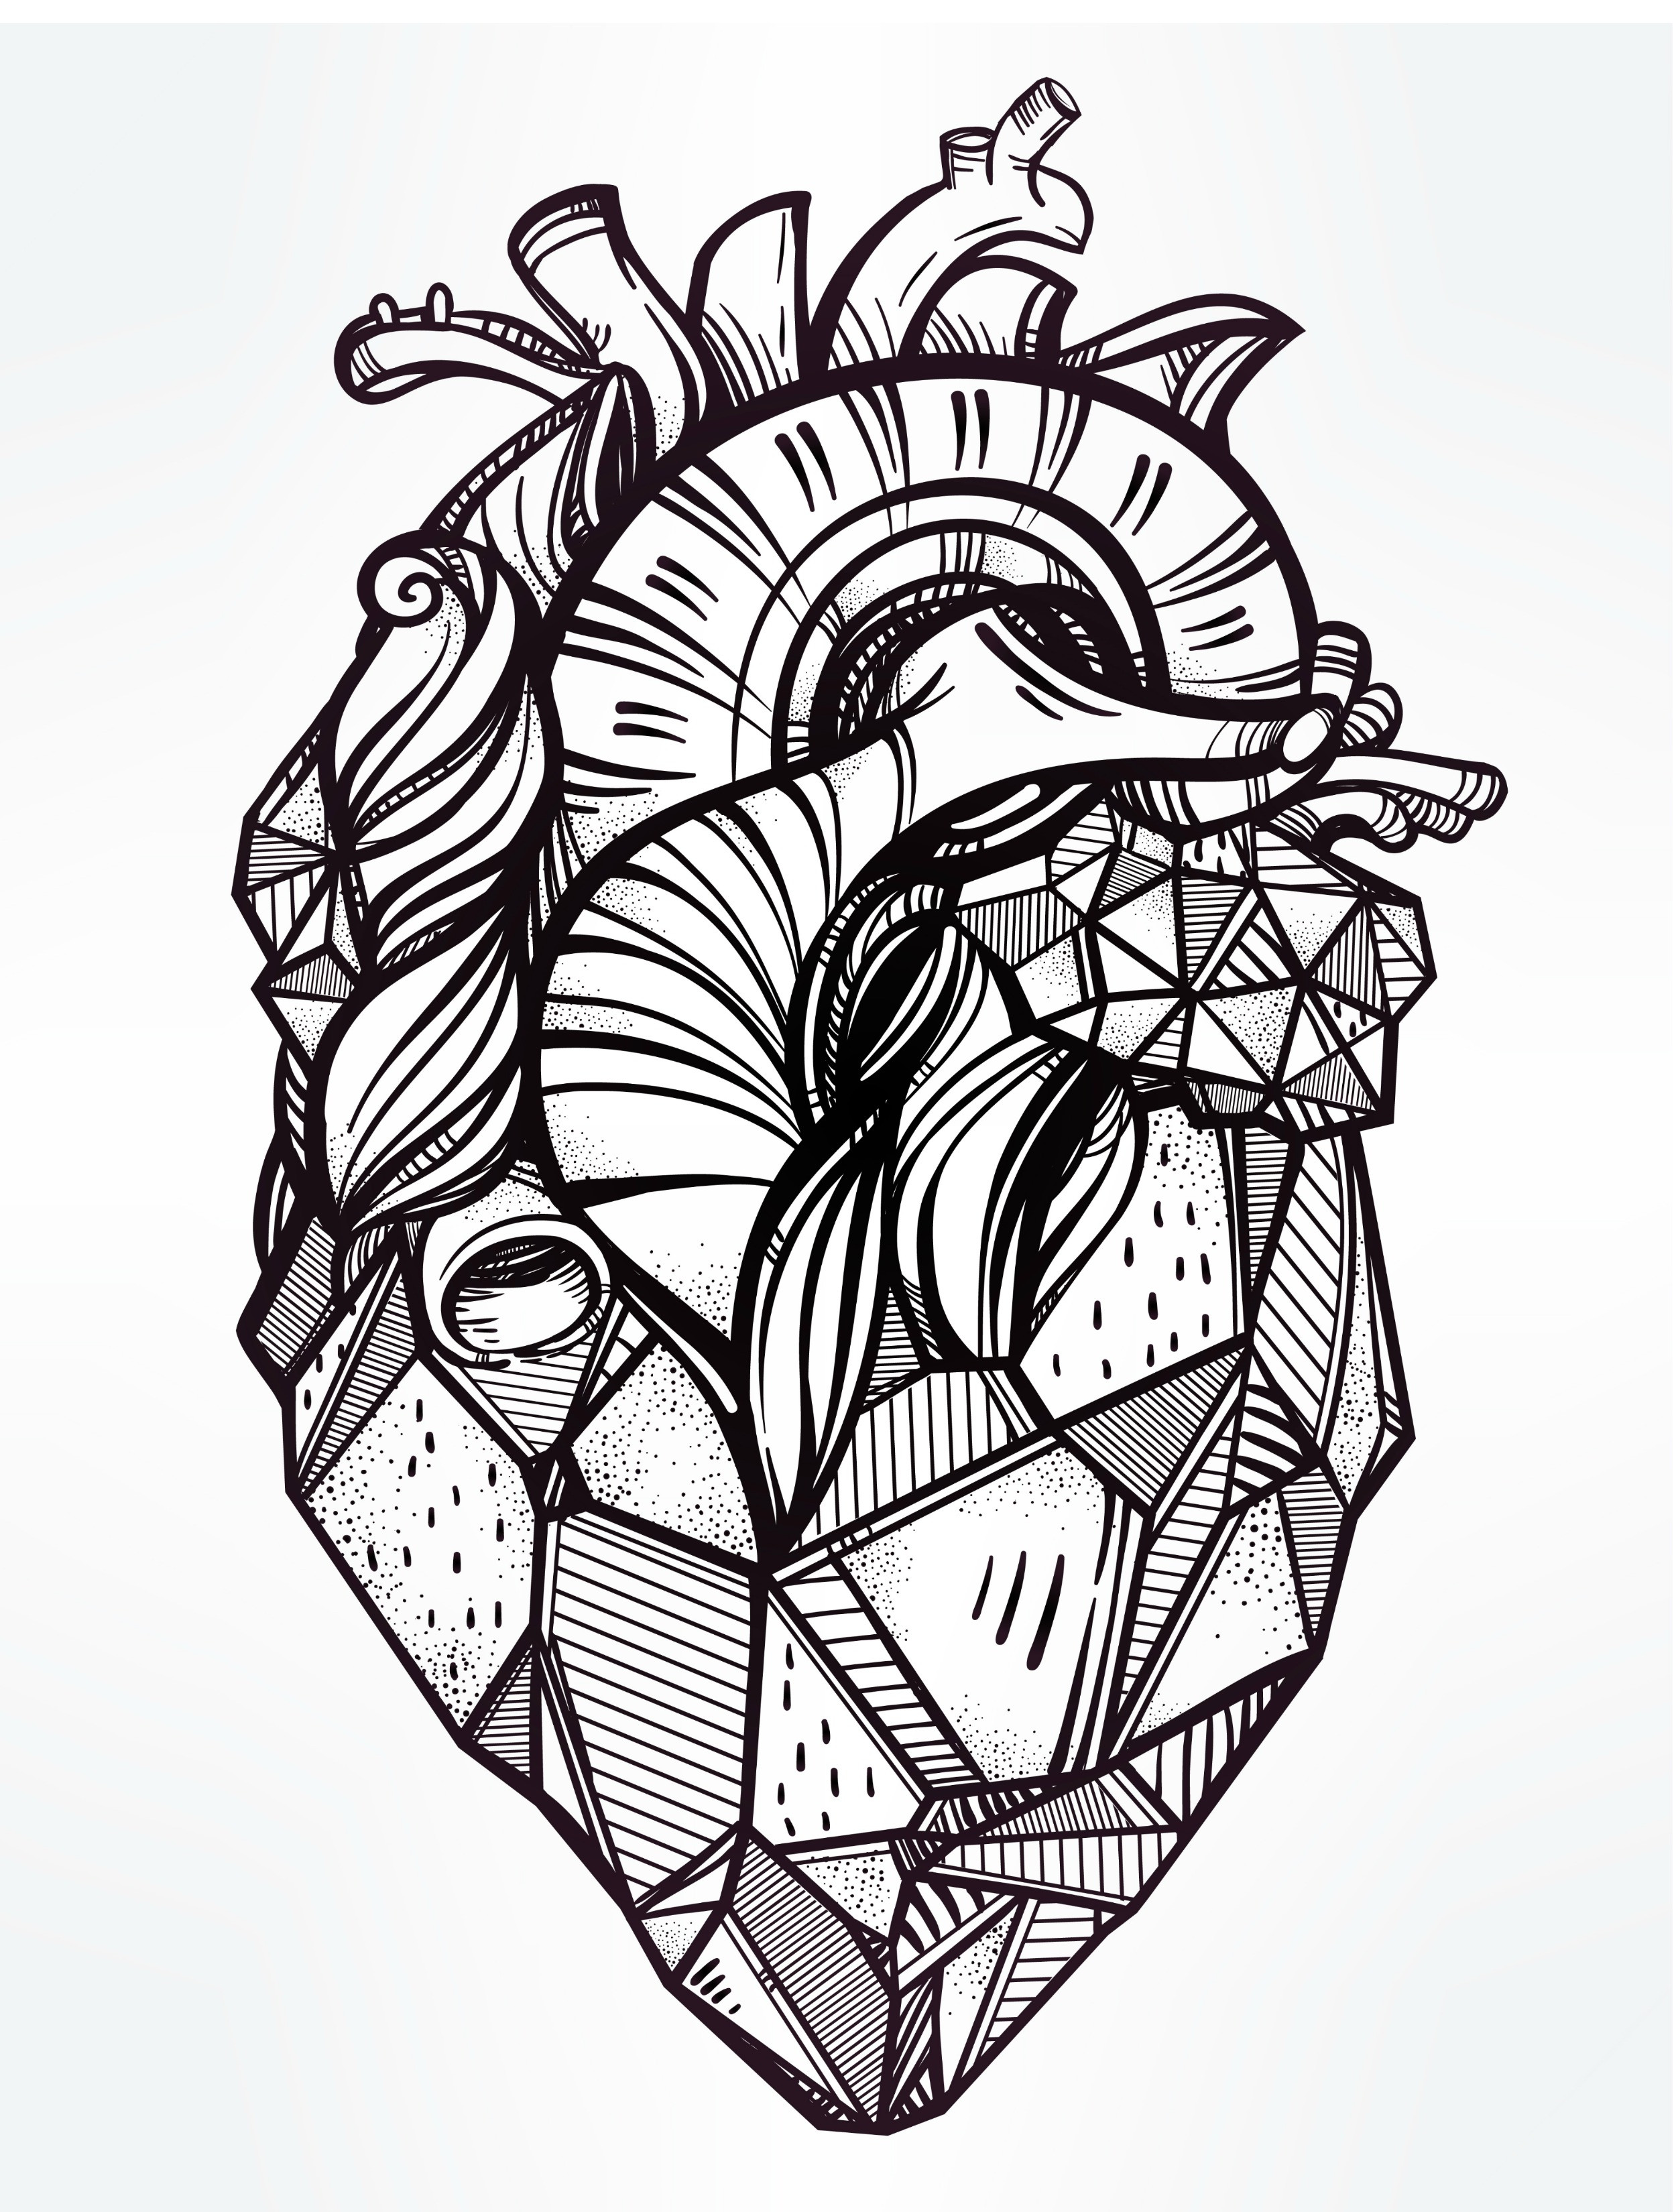 Best ideas about Free Printable Adult Coloring Pages . Save or Pin 20 Free Printable Valentines Adult Coloring Pages Nerdy Now.